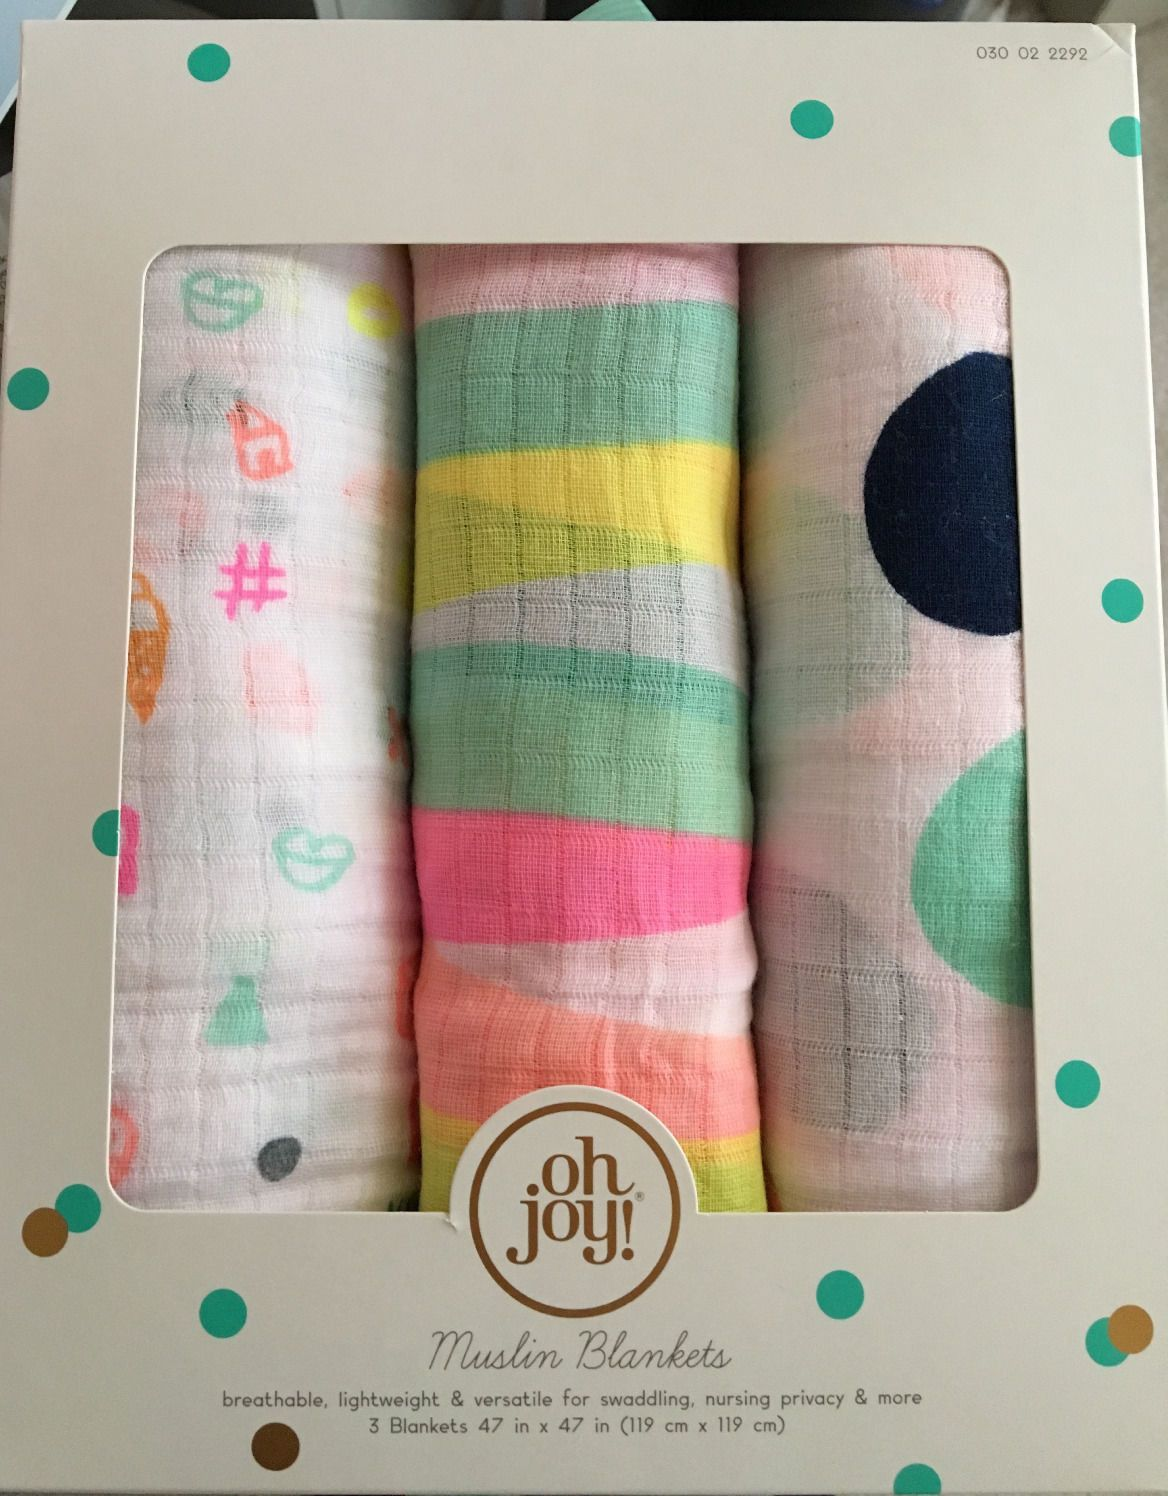 Swaddle Blankets Target Enchanting Nib Oh Joy Target Baby Muslin 3 Swaddling Blankets Pack Hard To Find Review